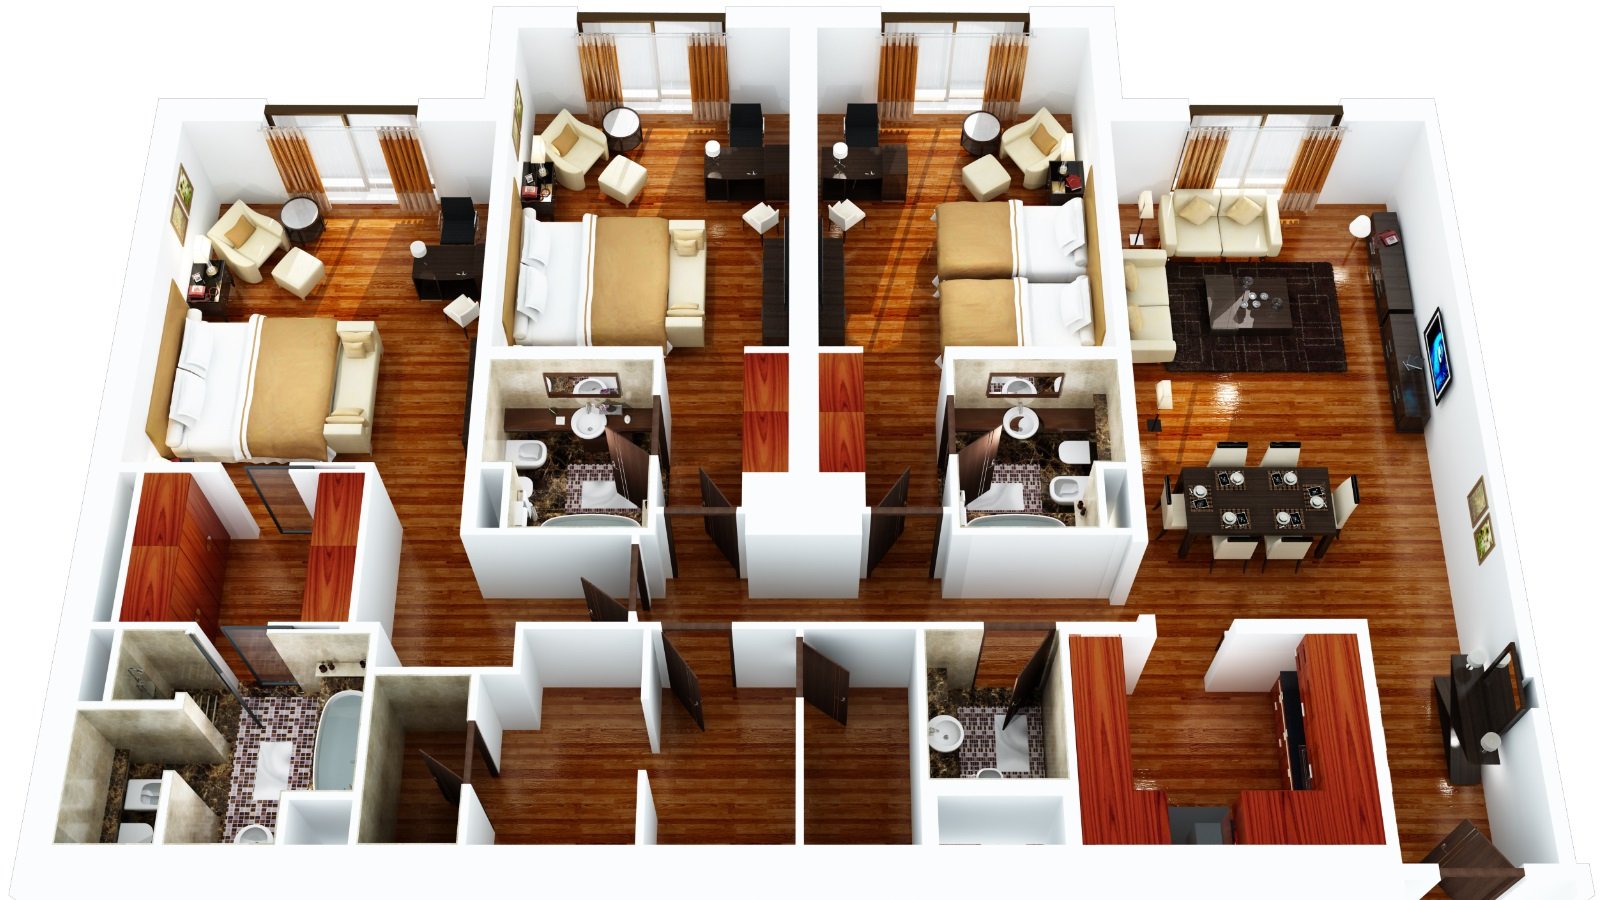 Grosvenor house dubai 2 bedroom residence apartments for House plans with income suite